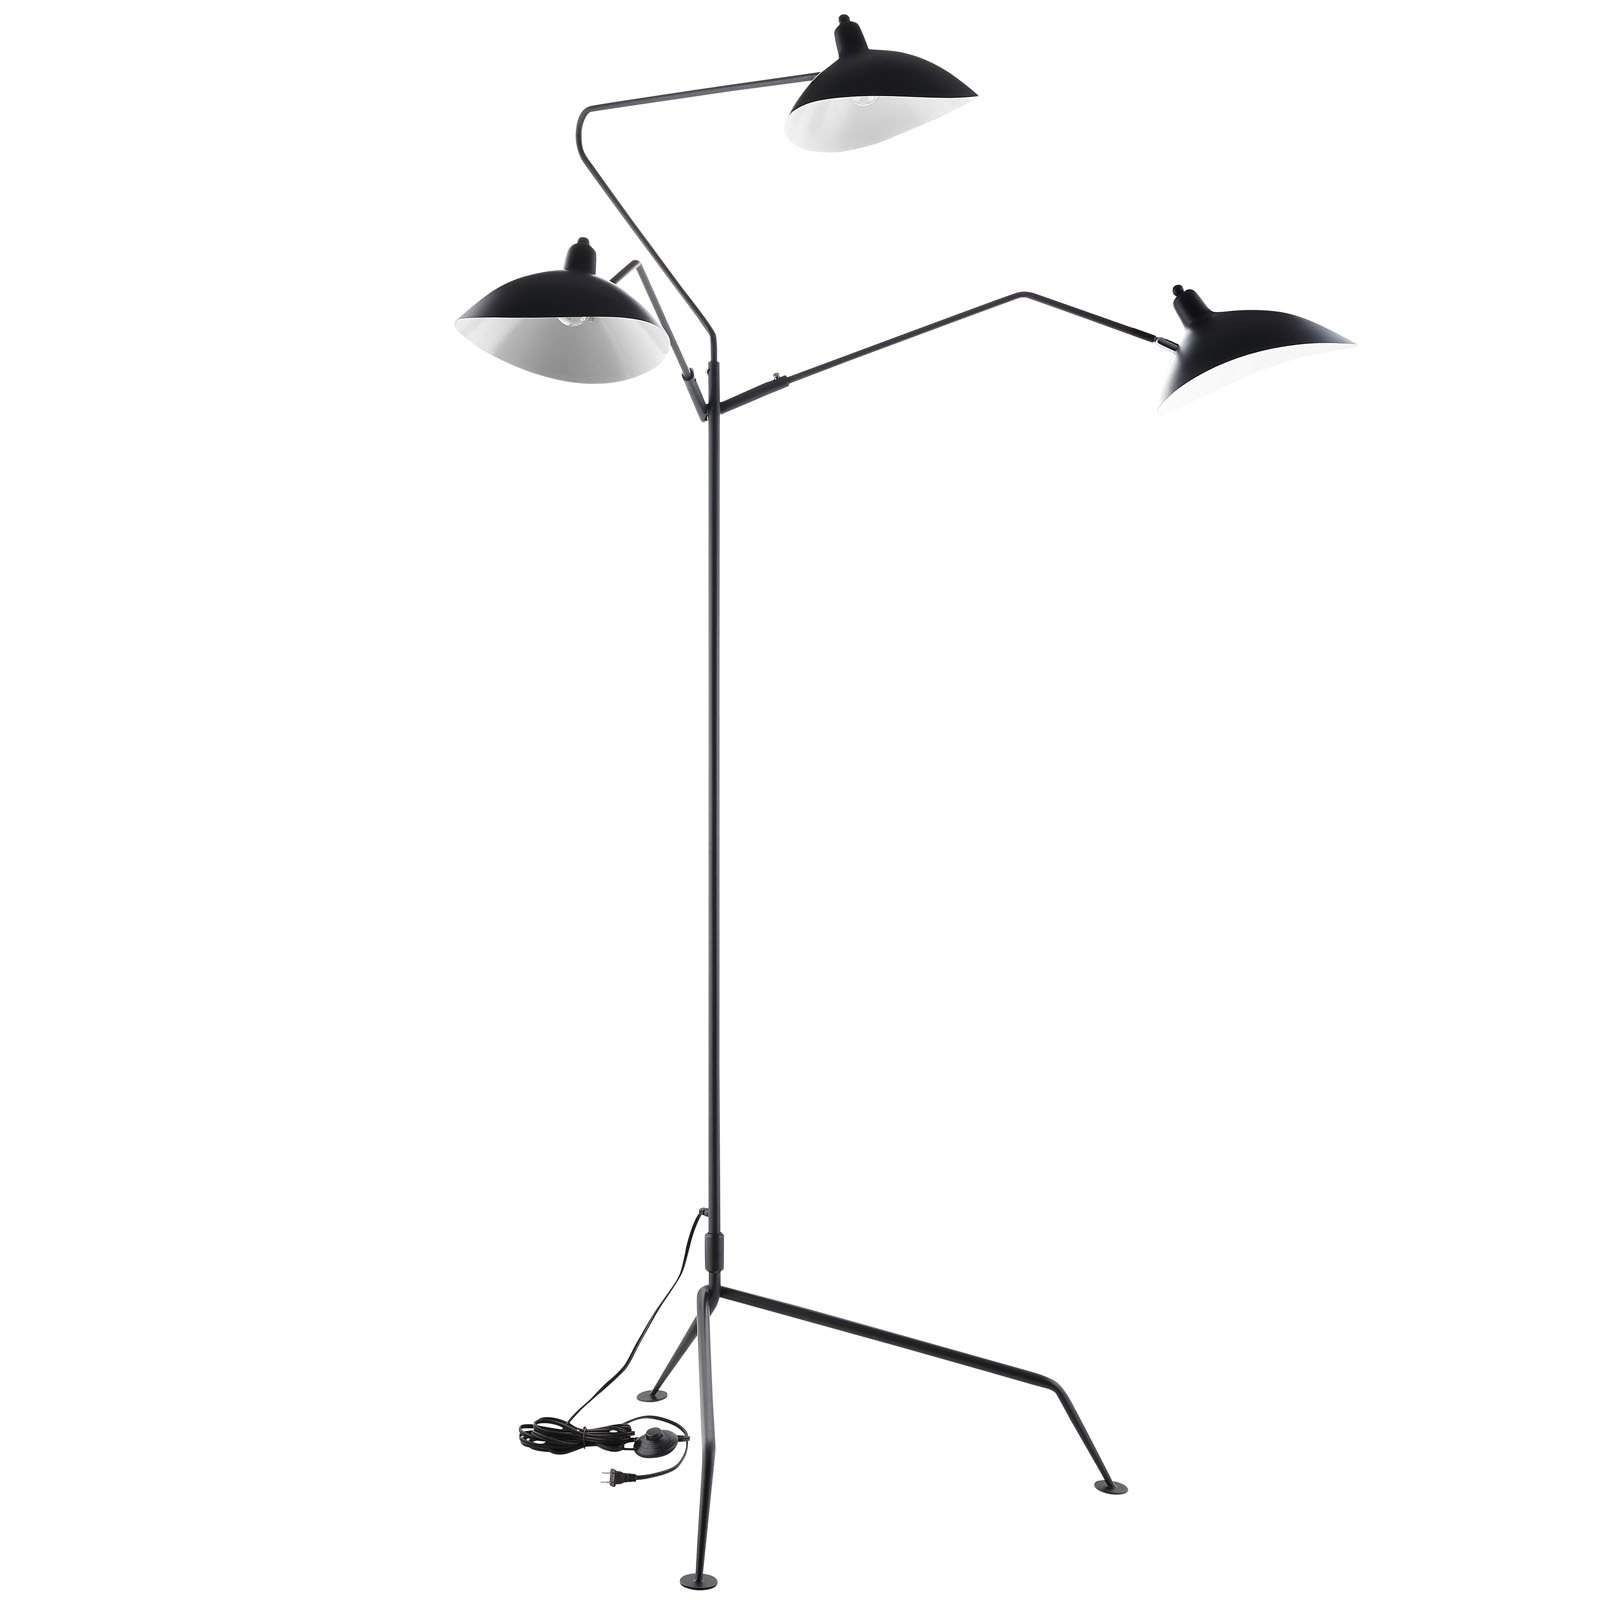 Modway View Stainless Steel Floor Lamp, Black